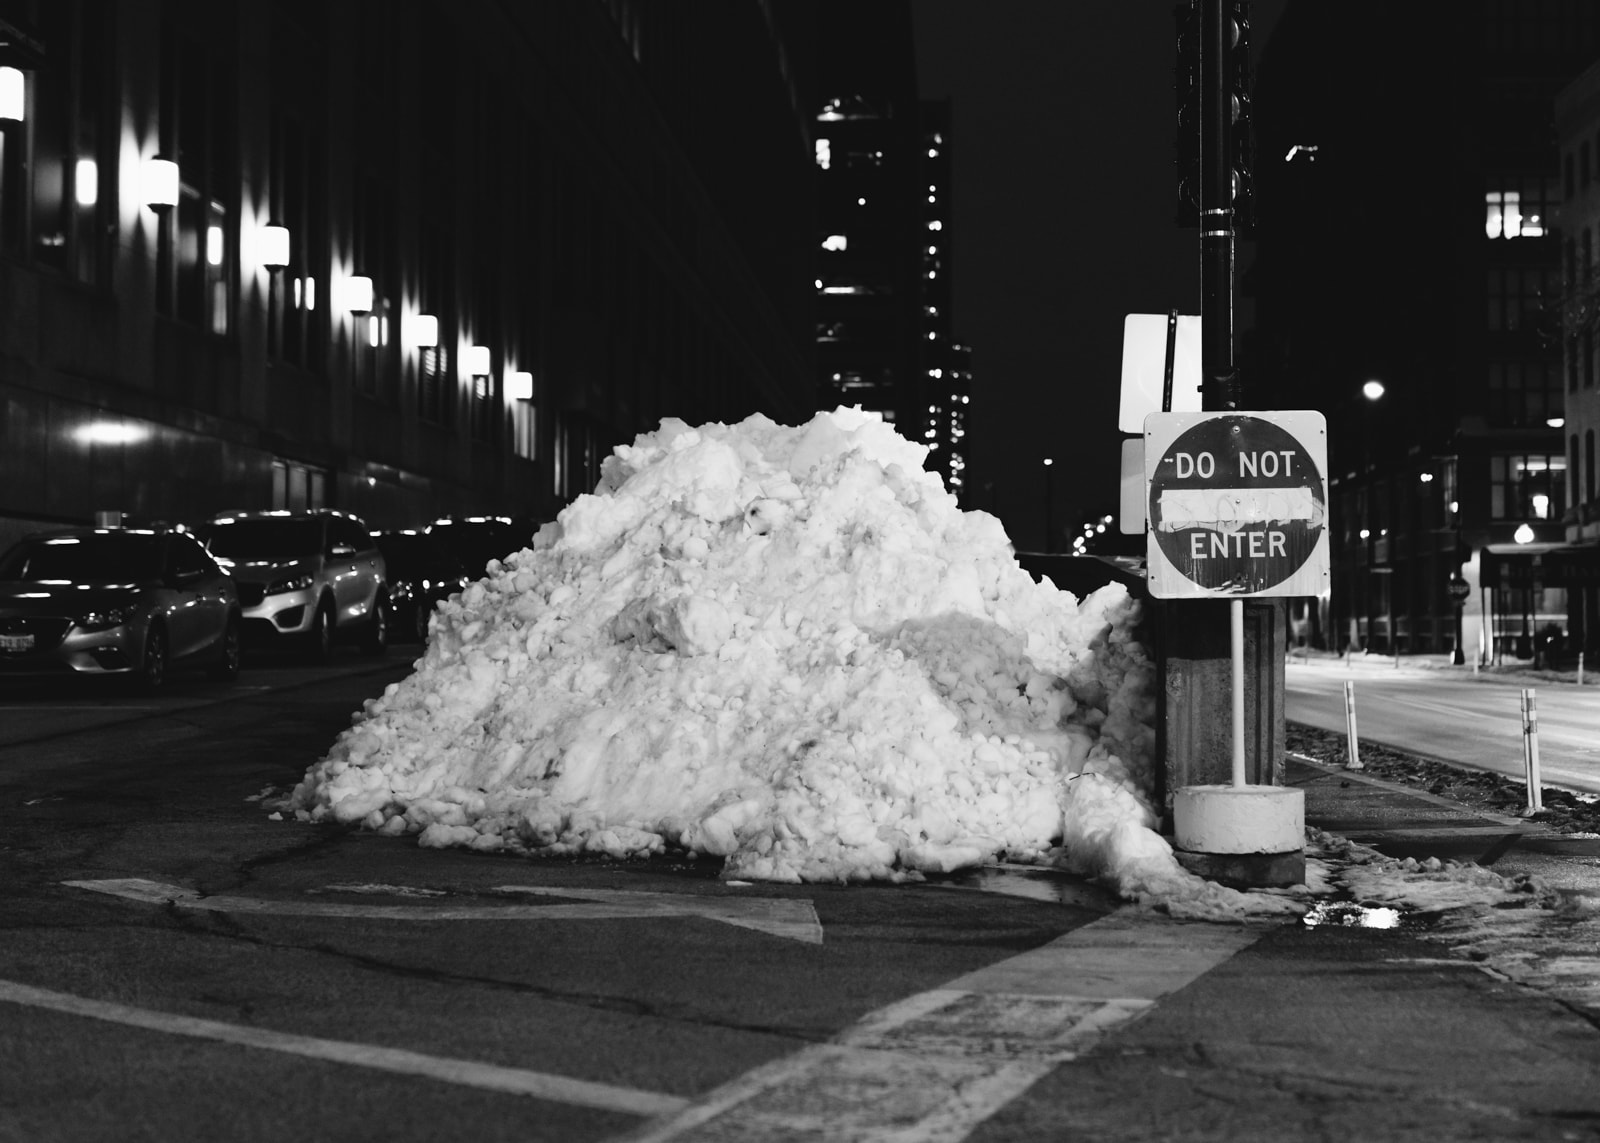 A snow pile in downtown Chicago, Illinois. 2020 Best Photos